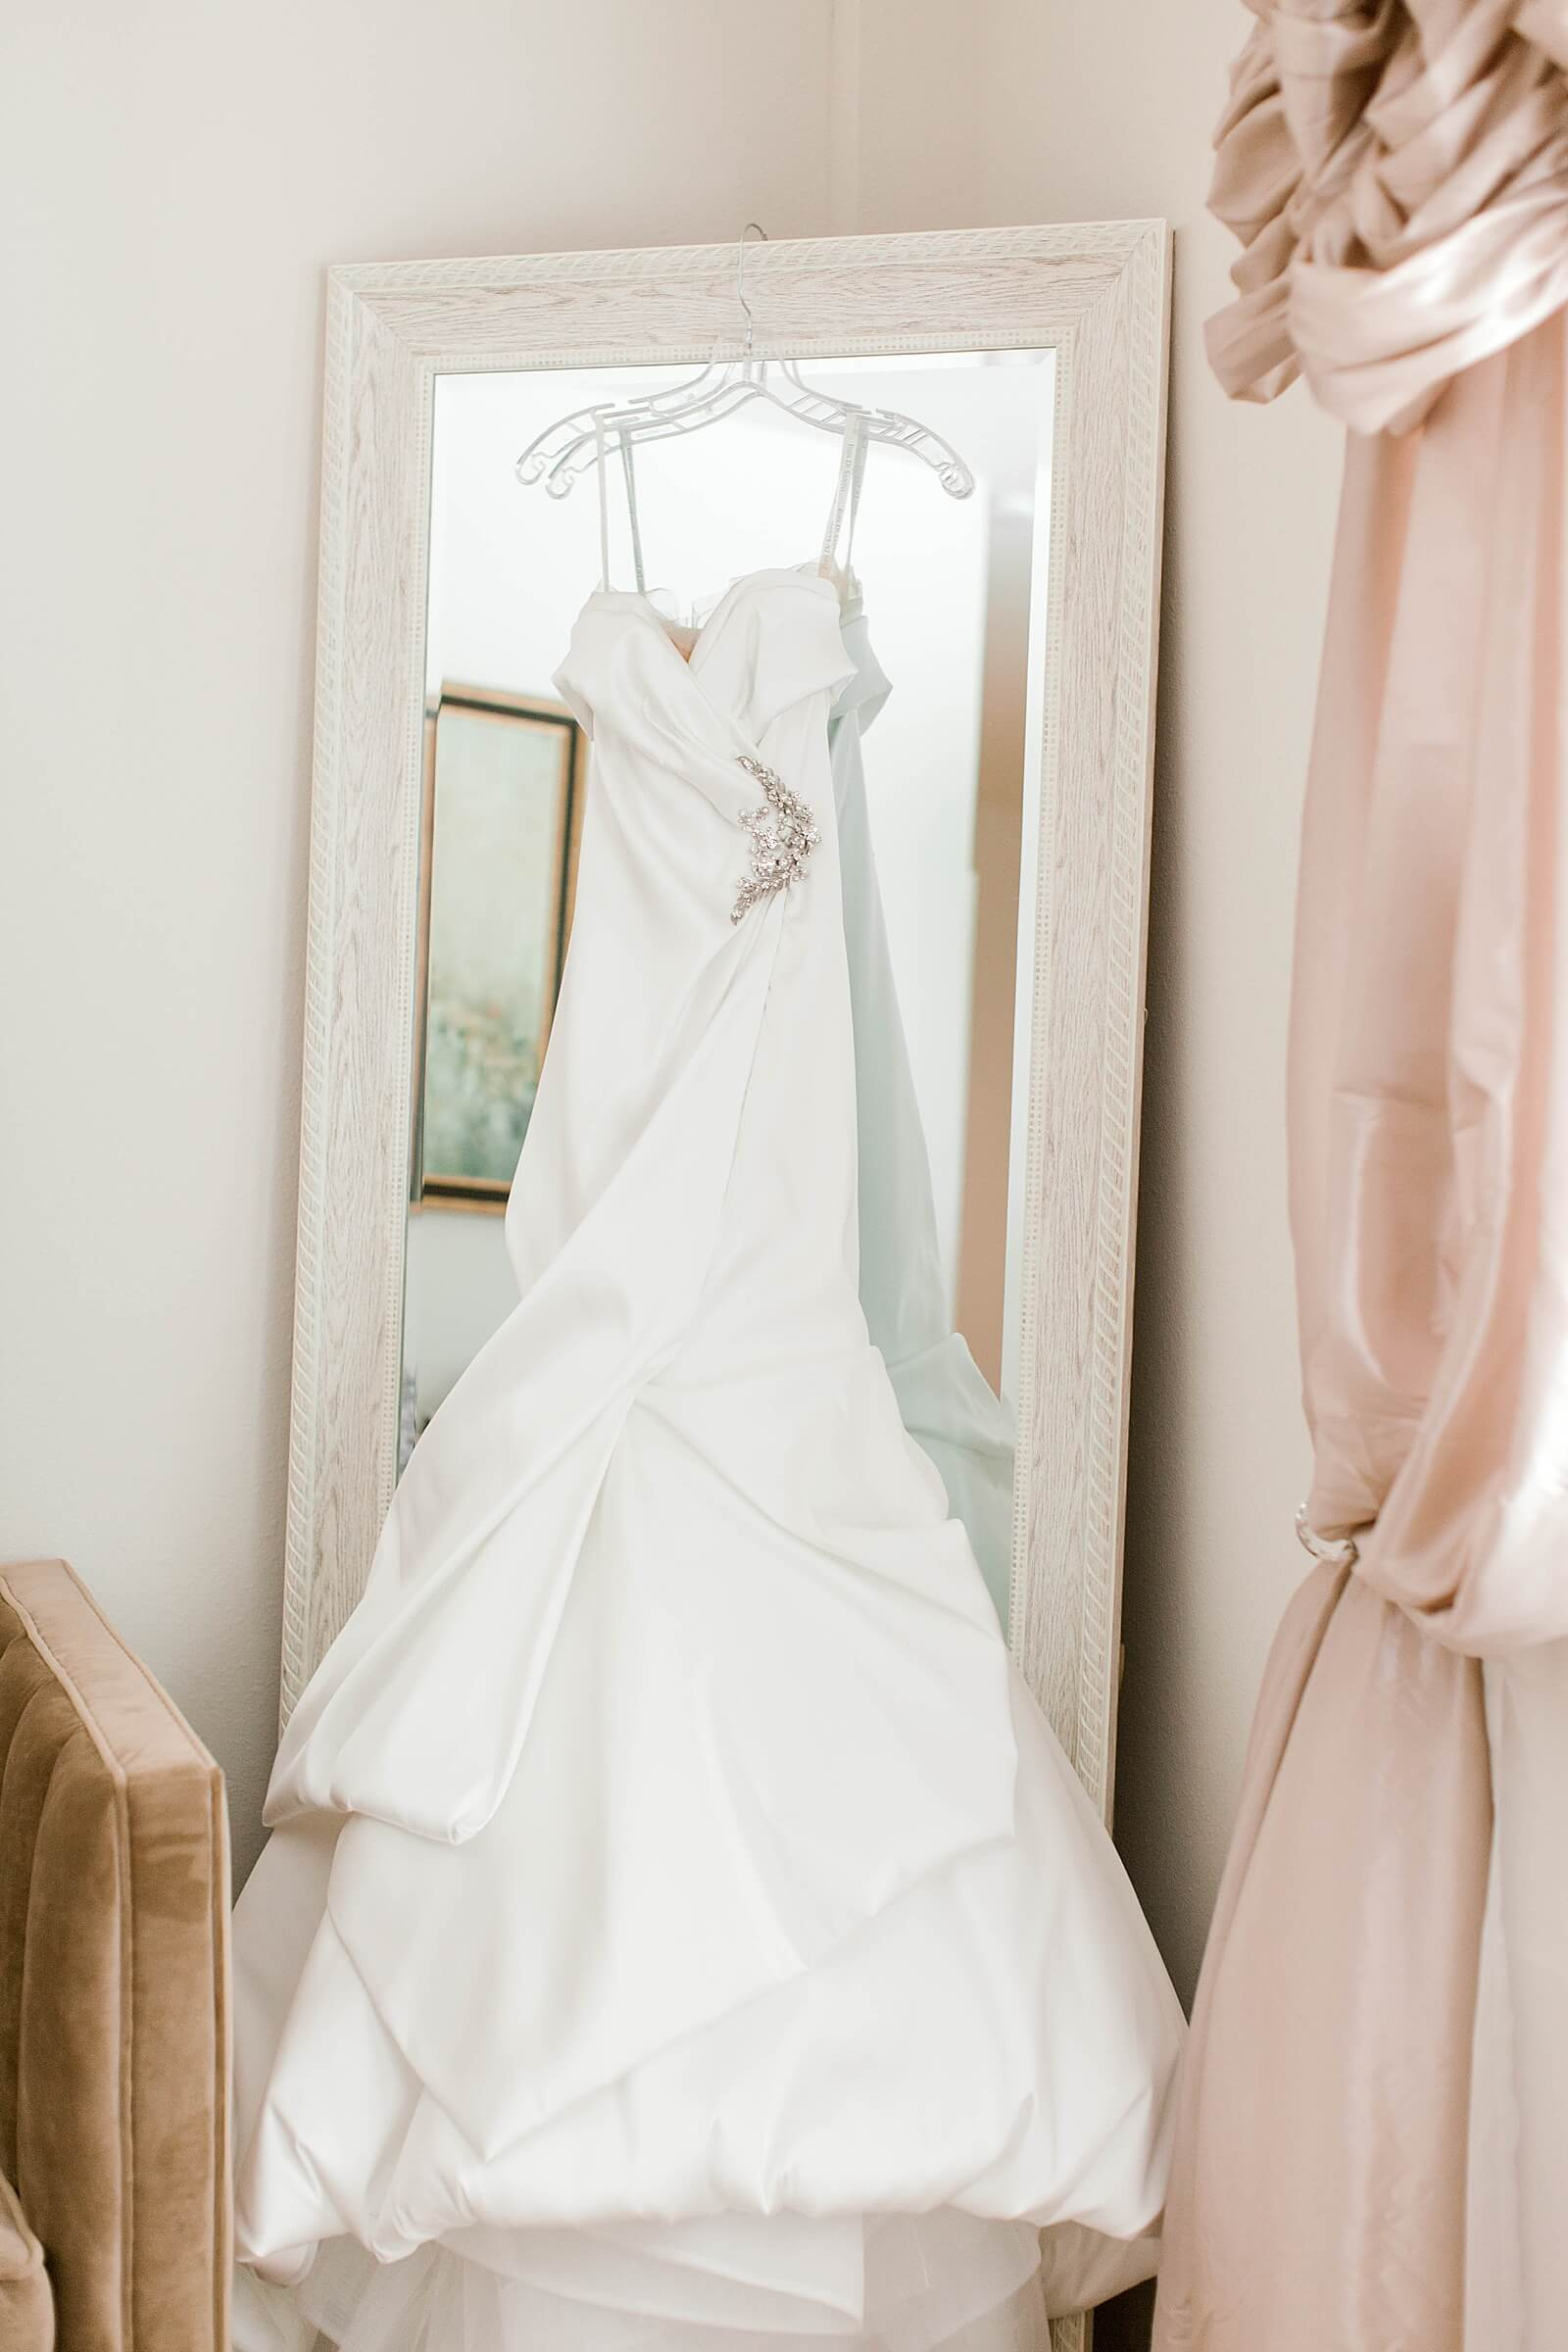 Classic wedding dress hanging on mirror in bridal suite at The Annex wedding venue near College Station